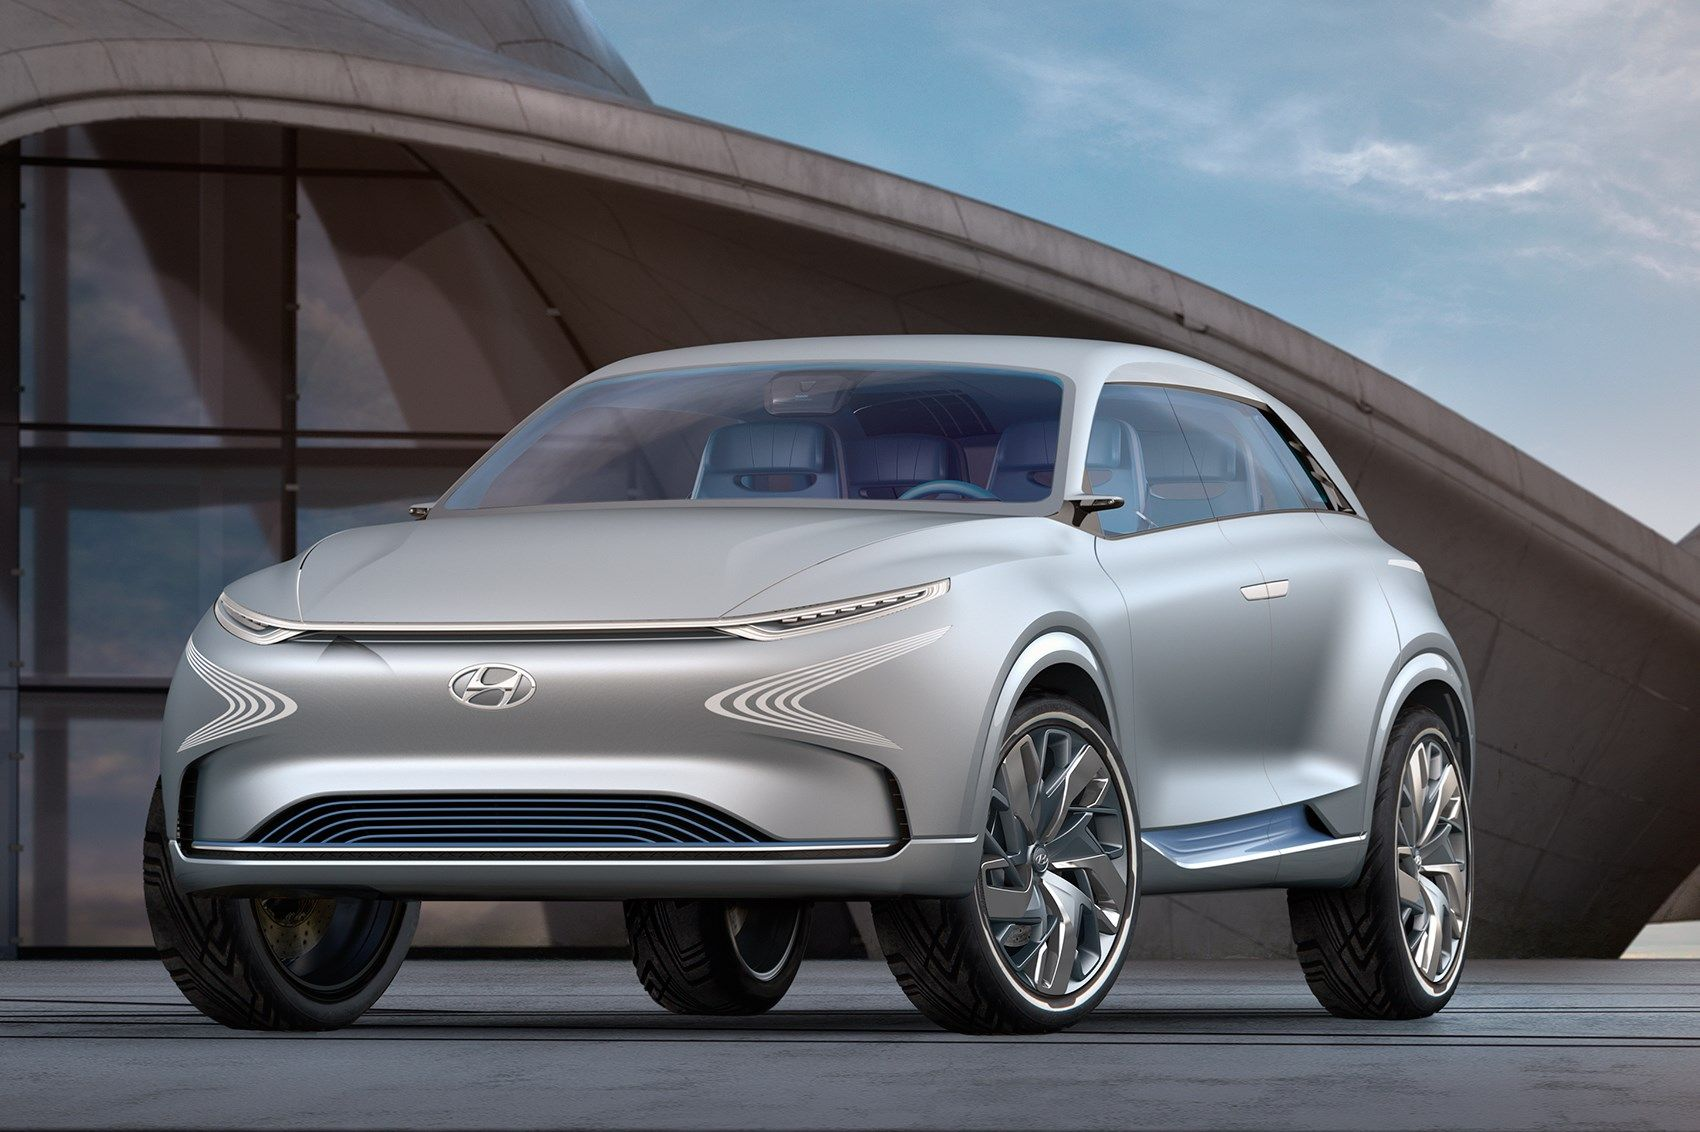 Hyundai FE Fuel Cell concept (With images) New hyundai